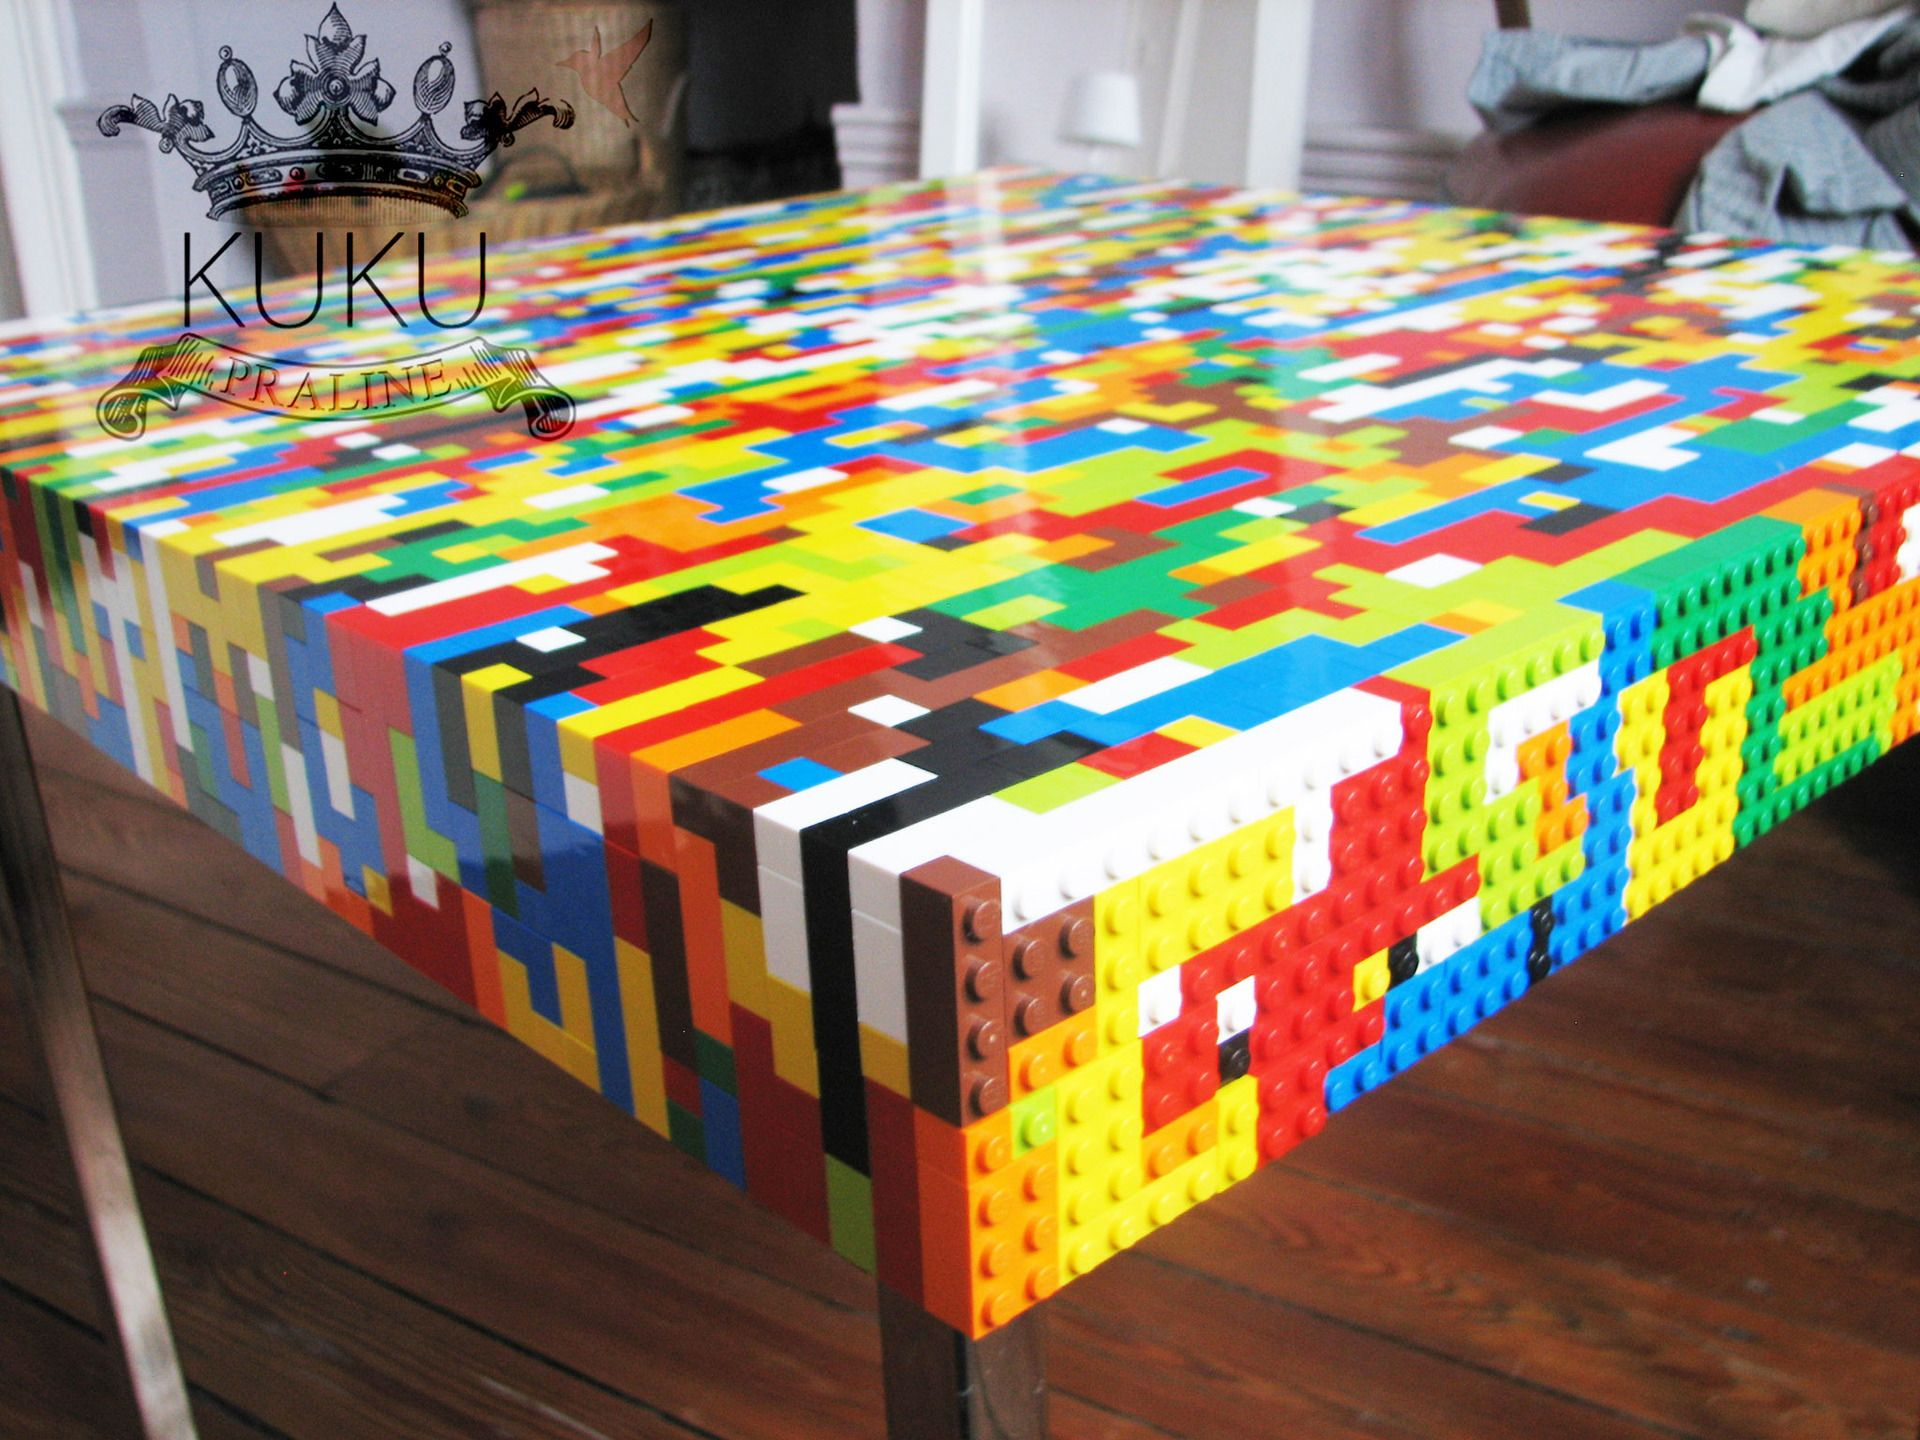 Table basse lego de salon ou d 39 appoint meubles et for Objet deco pour table de salon